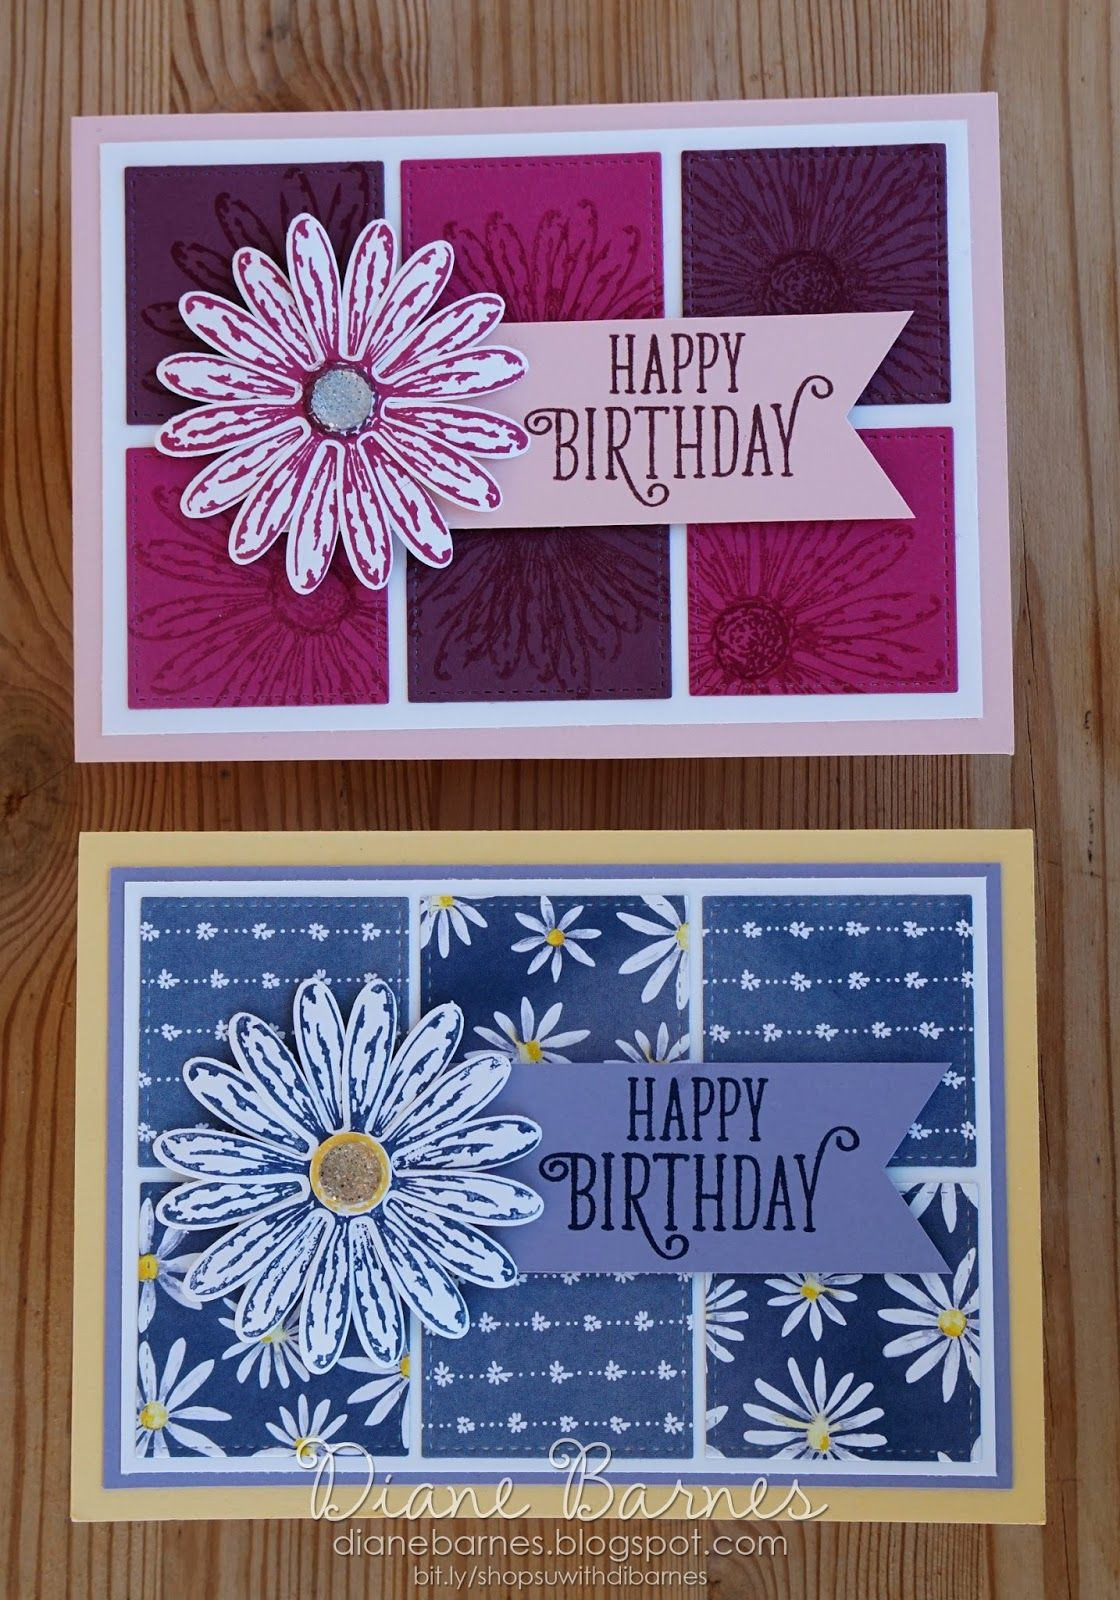 Handmade daisy birthday cards using stampin up daisy delight stamp